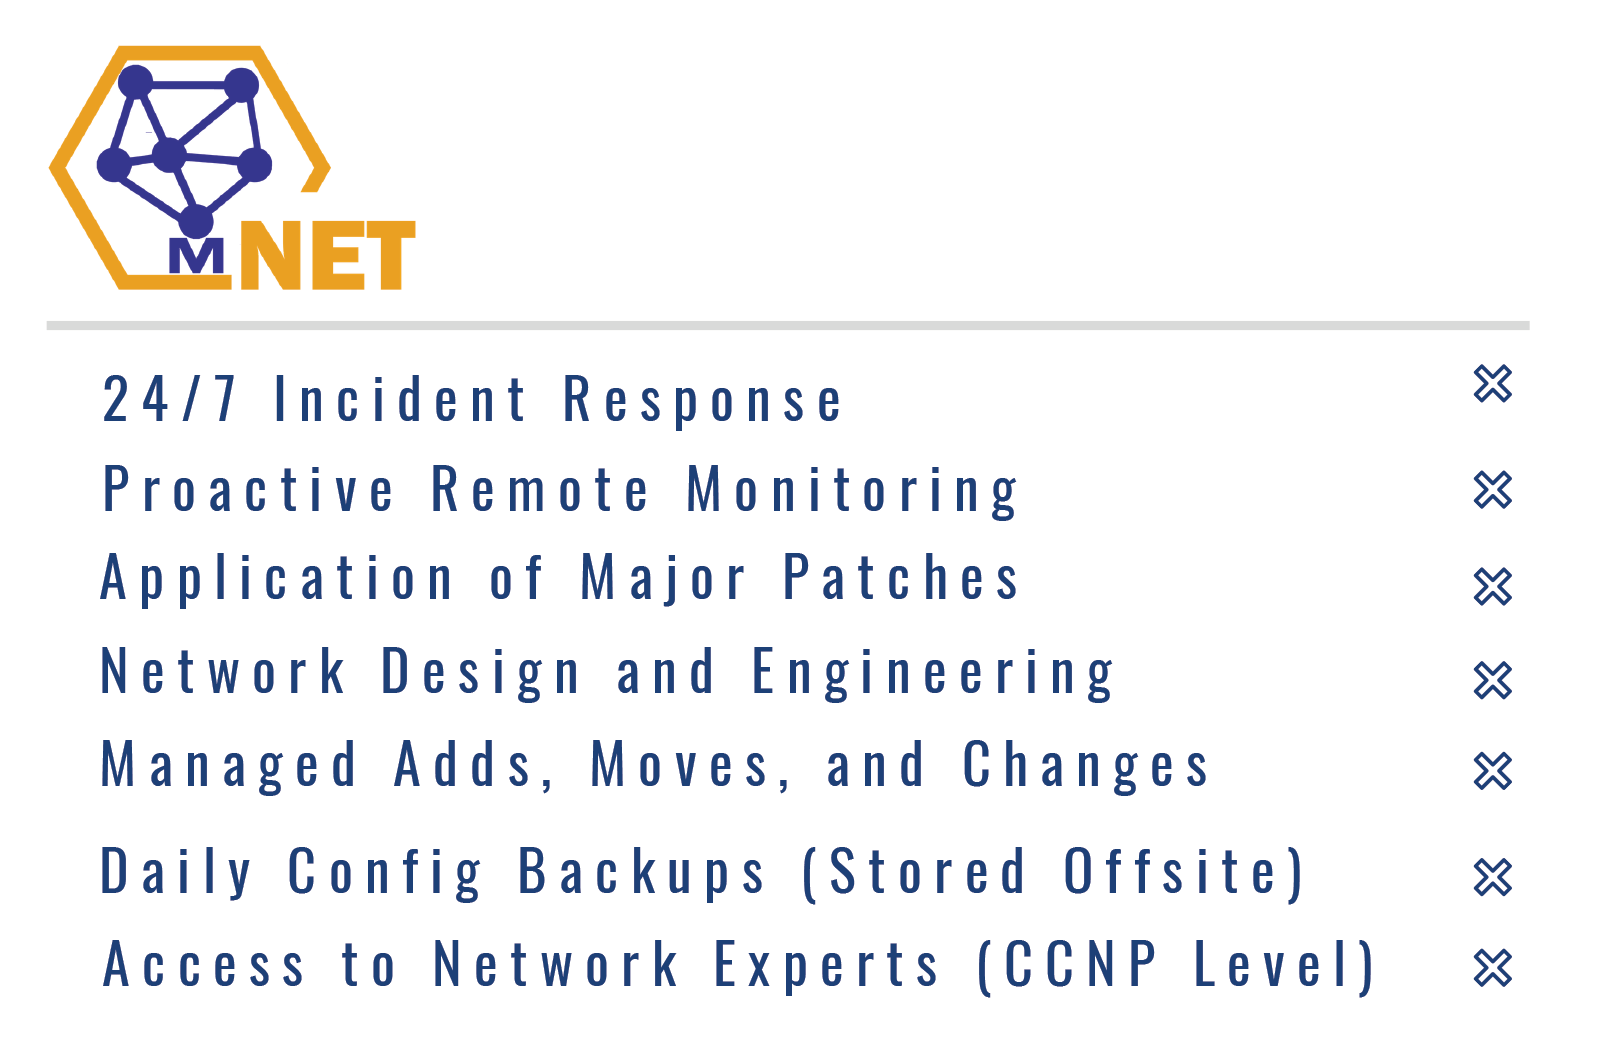 mNET features - Matrix Networks Managed Networks Service